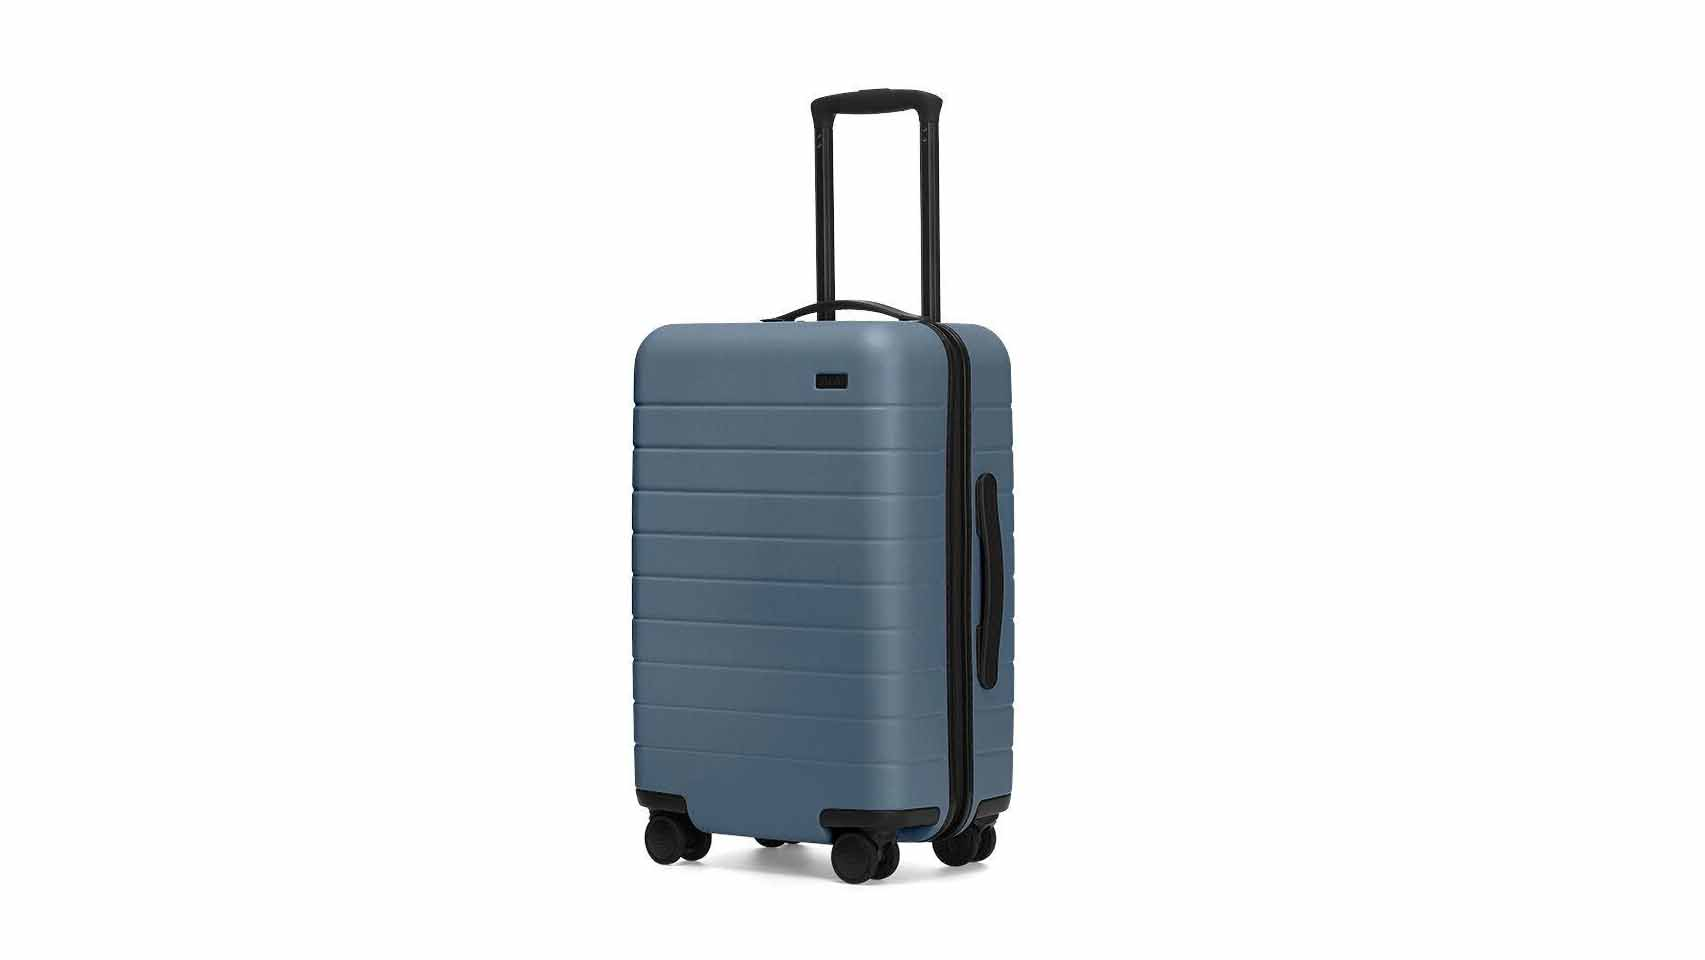 tech-gifts-away-suitcase